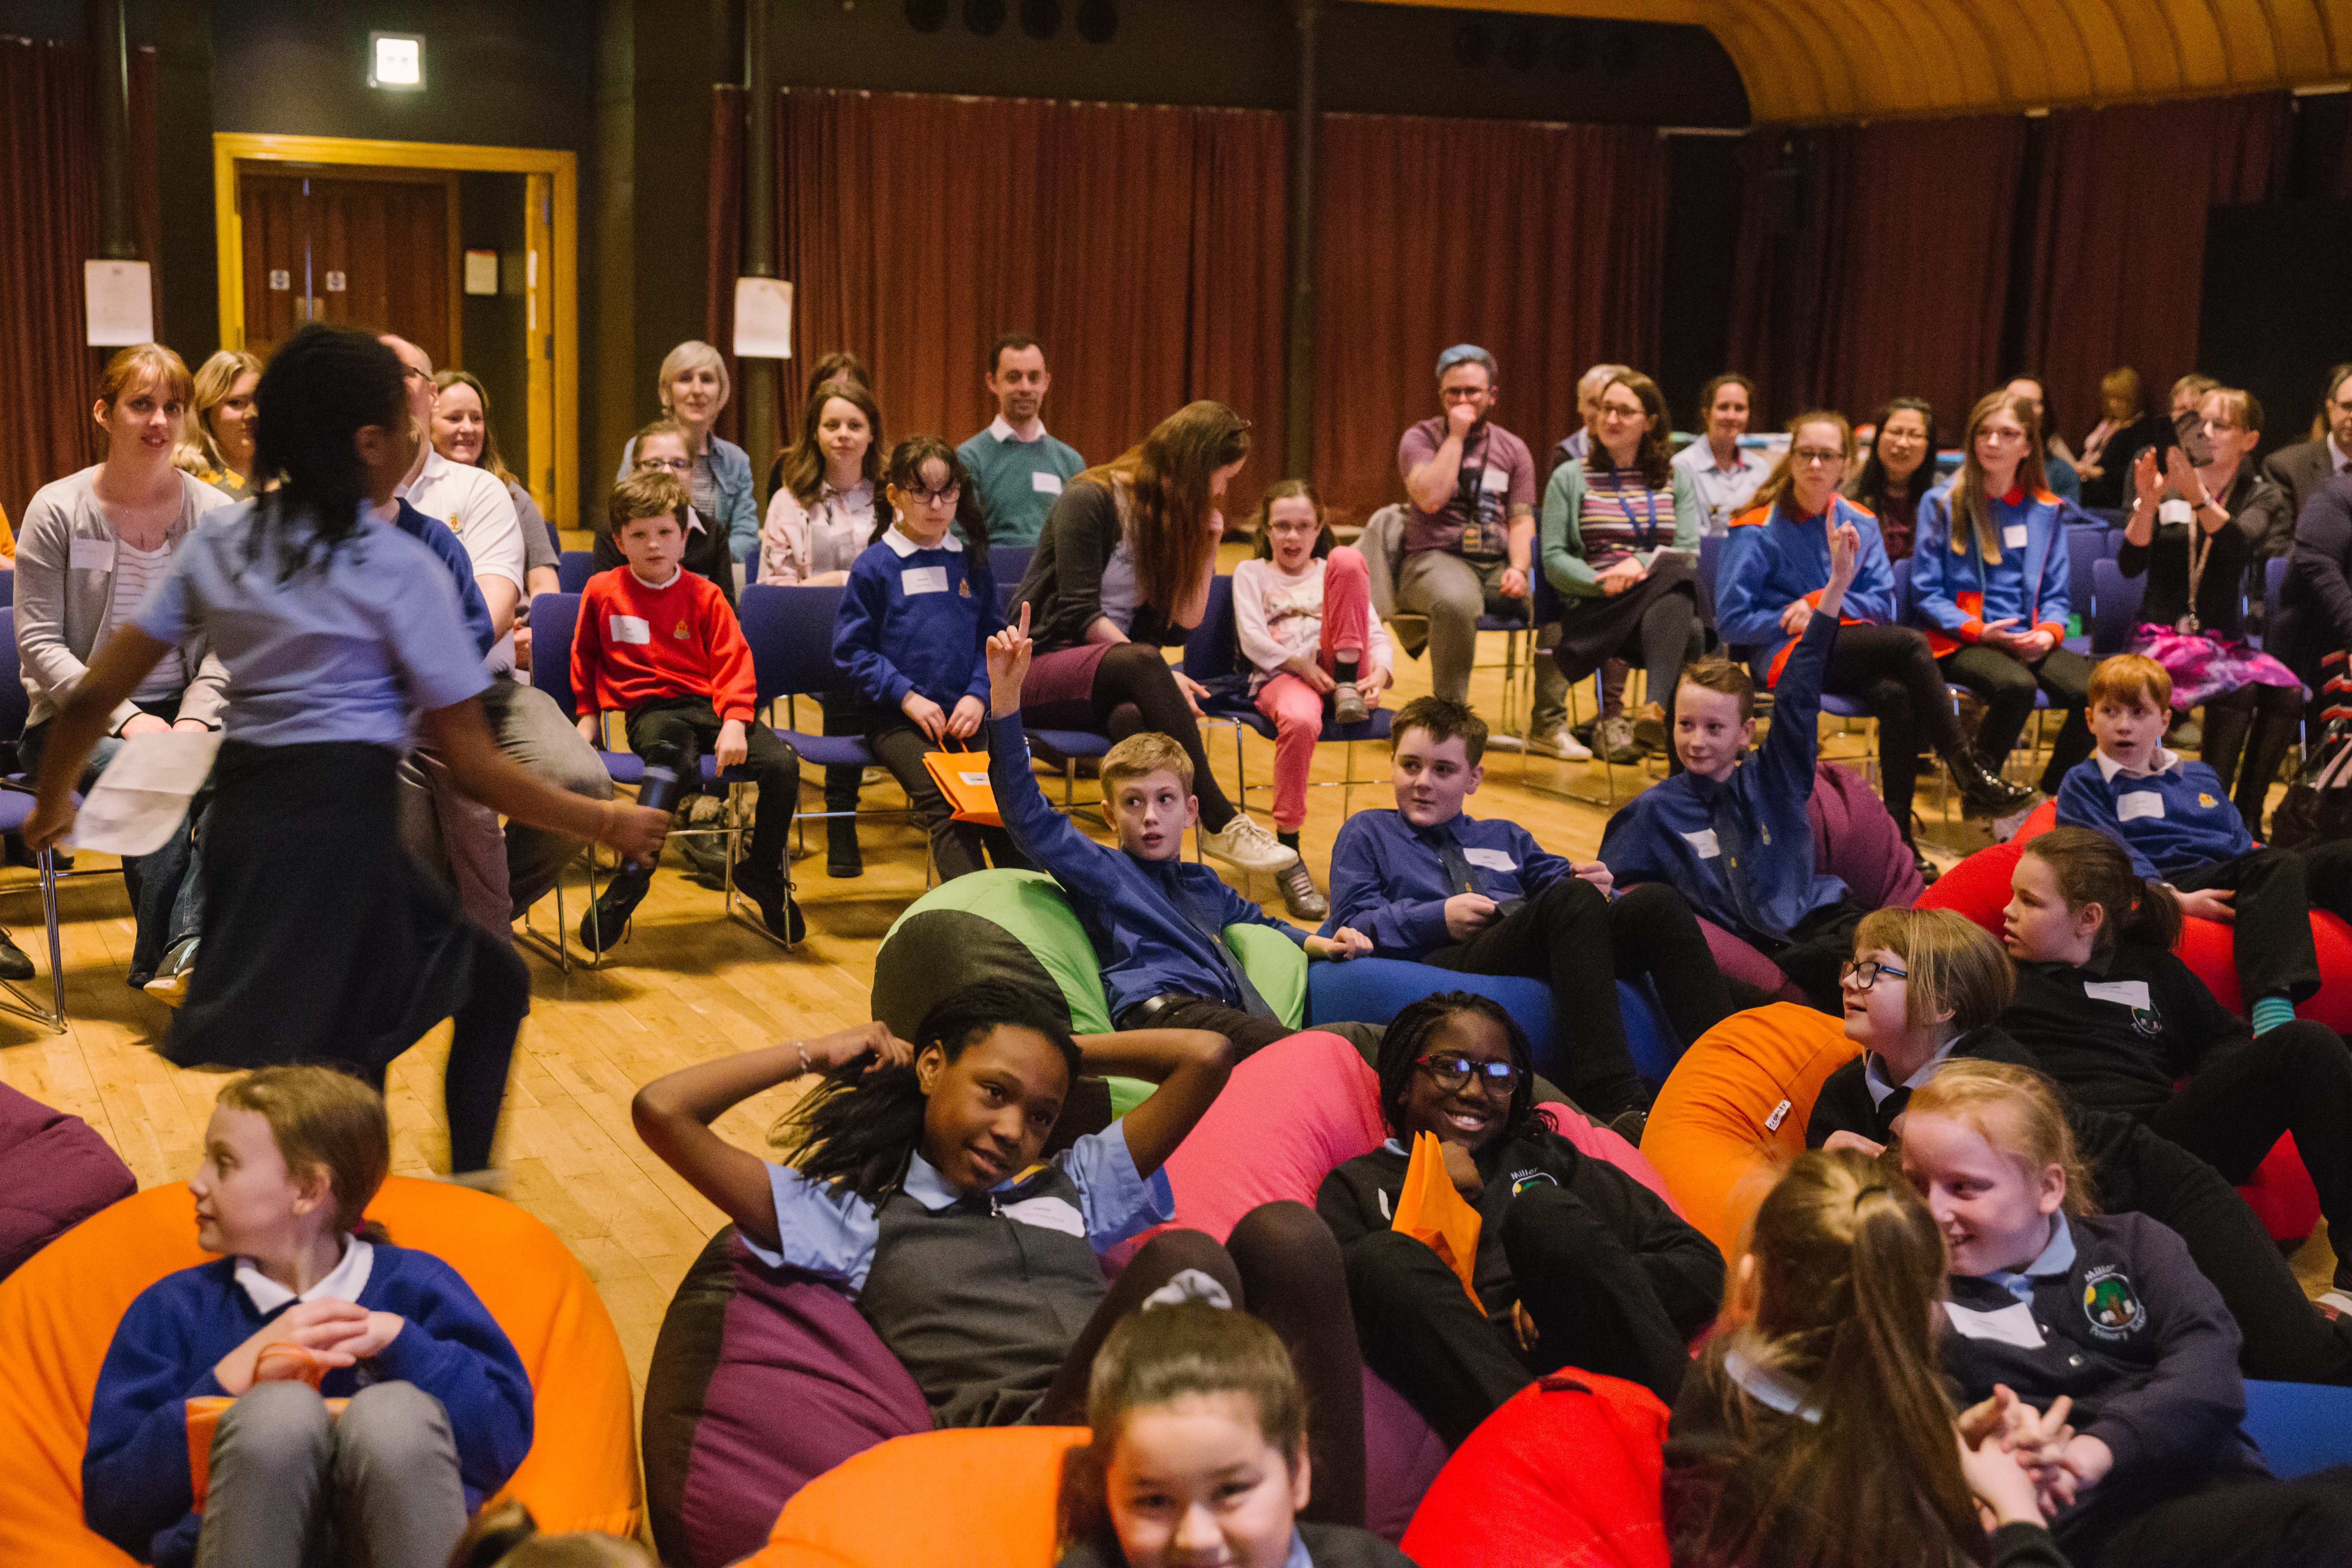 Young people sit in a hall, some on beanbags some on chairs